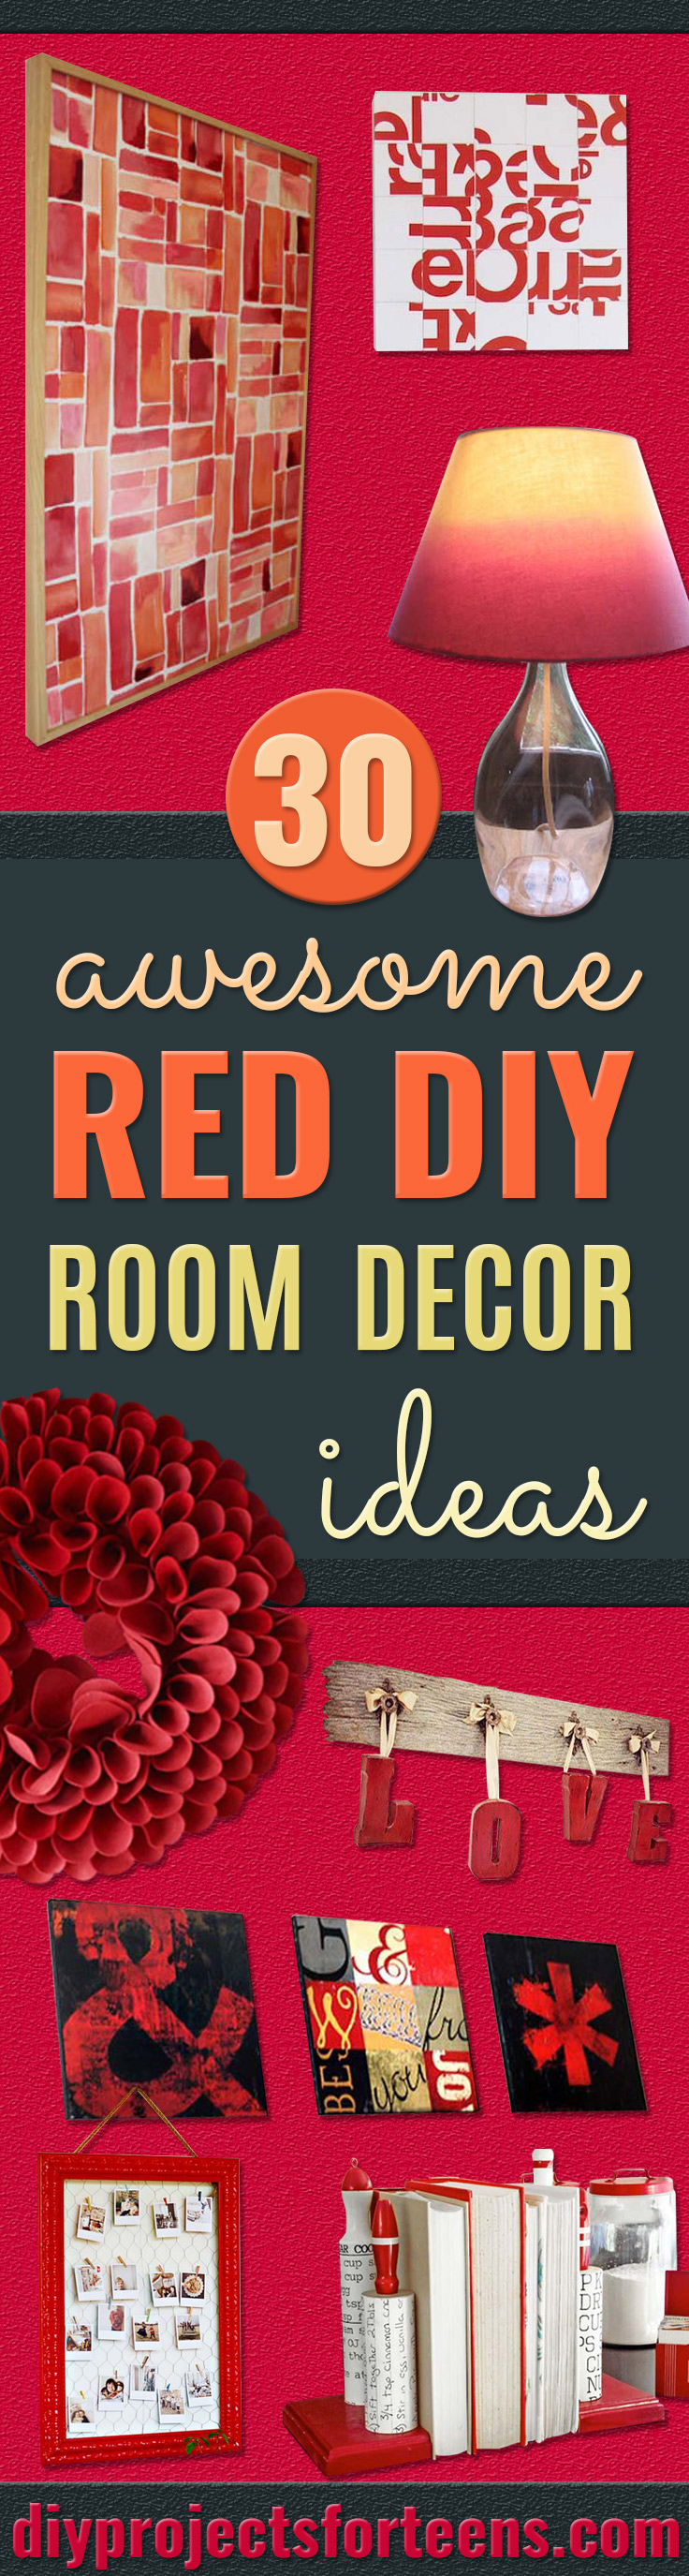 30 brilliant red diy room decor ideas - Cool ways to decorate your room ...